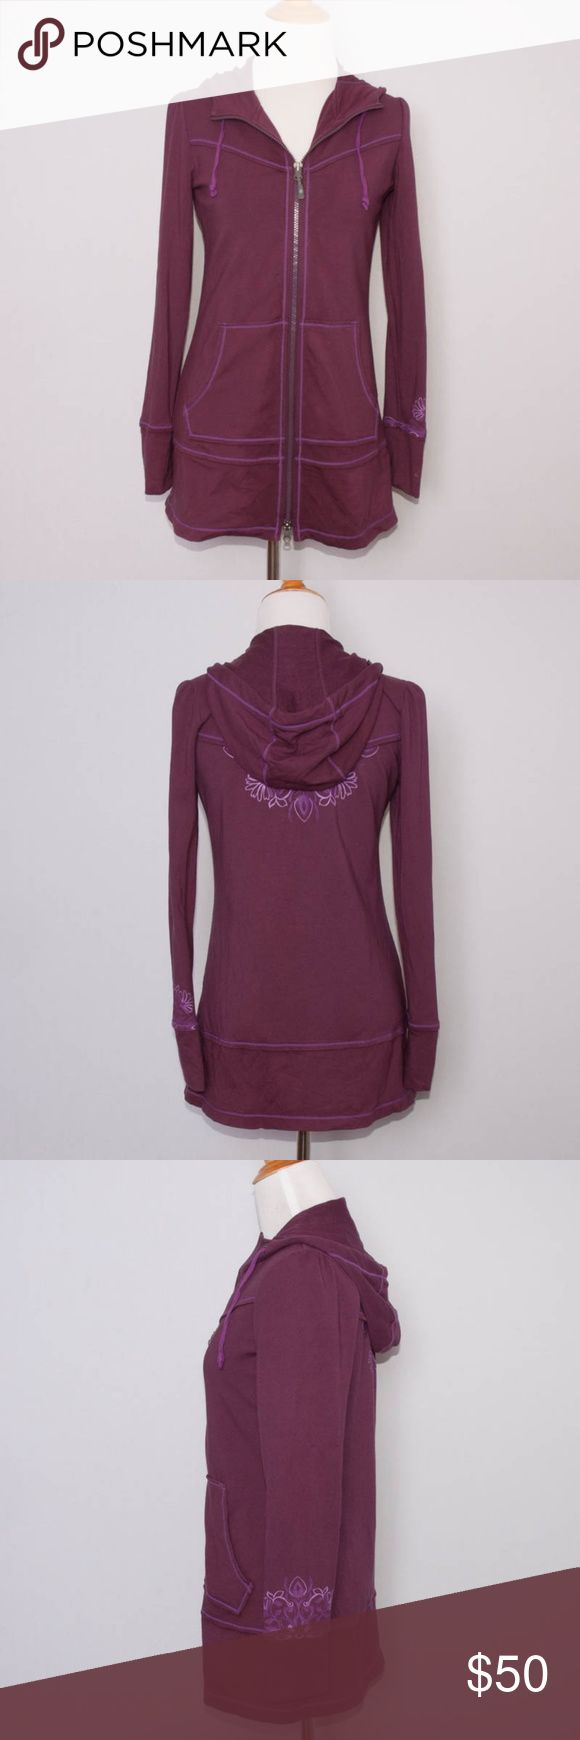 """Athleta Sphinx Hoodie and Yoga Pants Size: Hoodie is XXS and pants are XSP  """"Sphinx Hoodie and Yoga Pants"""" in """"Grape Jam""""  Full zip and kangaroo front pocket on the jacket  Floral design on sleeve cuffs and back of jacket  Drawstring waist pants  57% Cotton, 38% Modal, 5% Spandex  Machine wash  Made in Vietnam  Measurements:  Jacket  Bust: 34""""  Waist: 30""""  Sleeve Length: 24""""  Overall Length: 28""""  Pants  Waist: 26""""  Hips: 35""""  Inseam: 29""""  Overall Length: 35""""  Condition:  Hoodie and pants are…"""